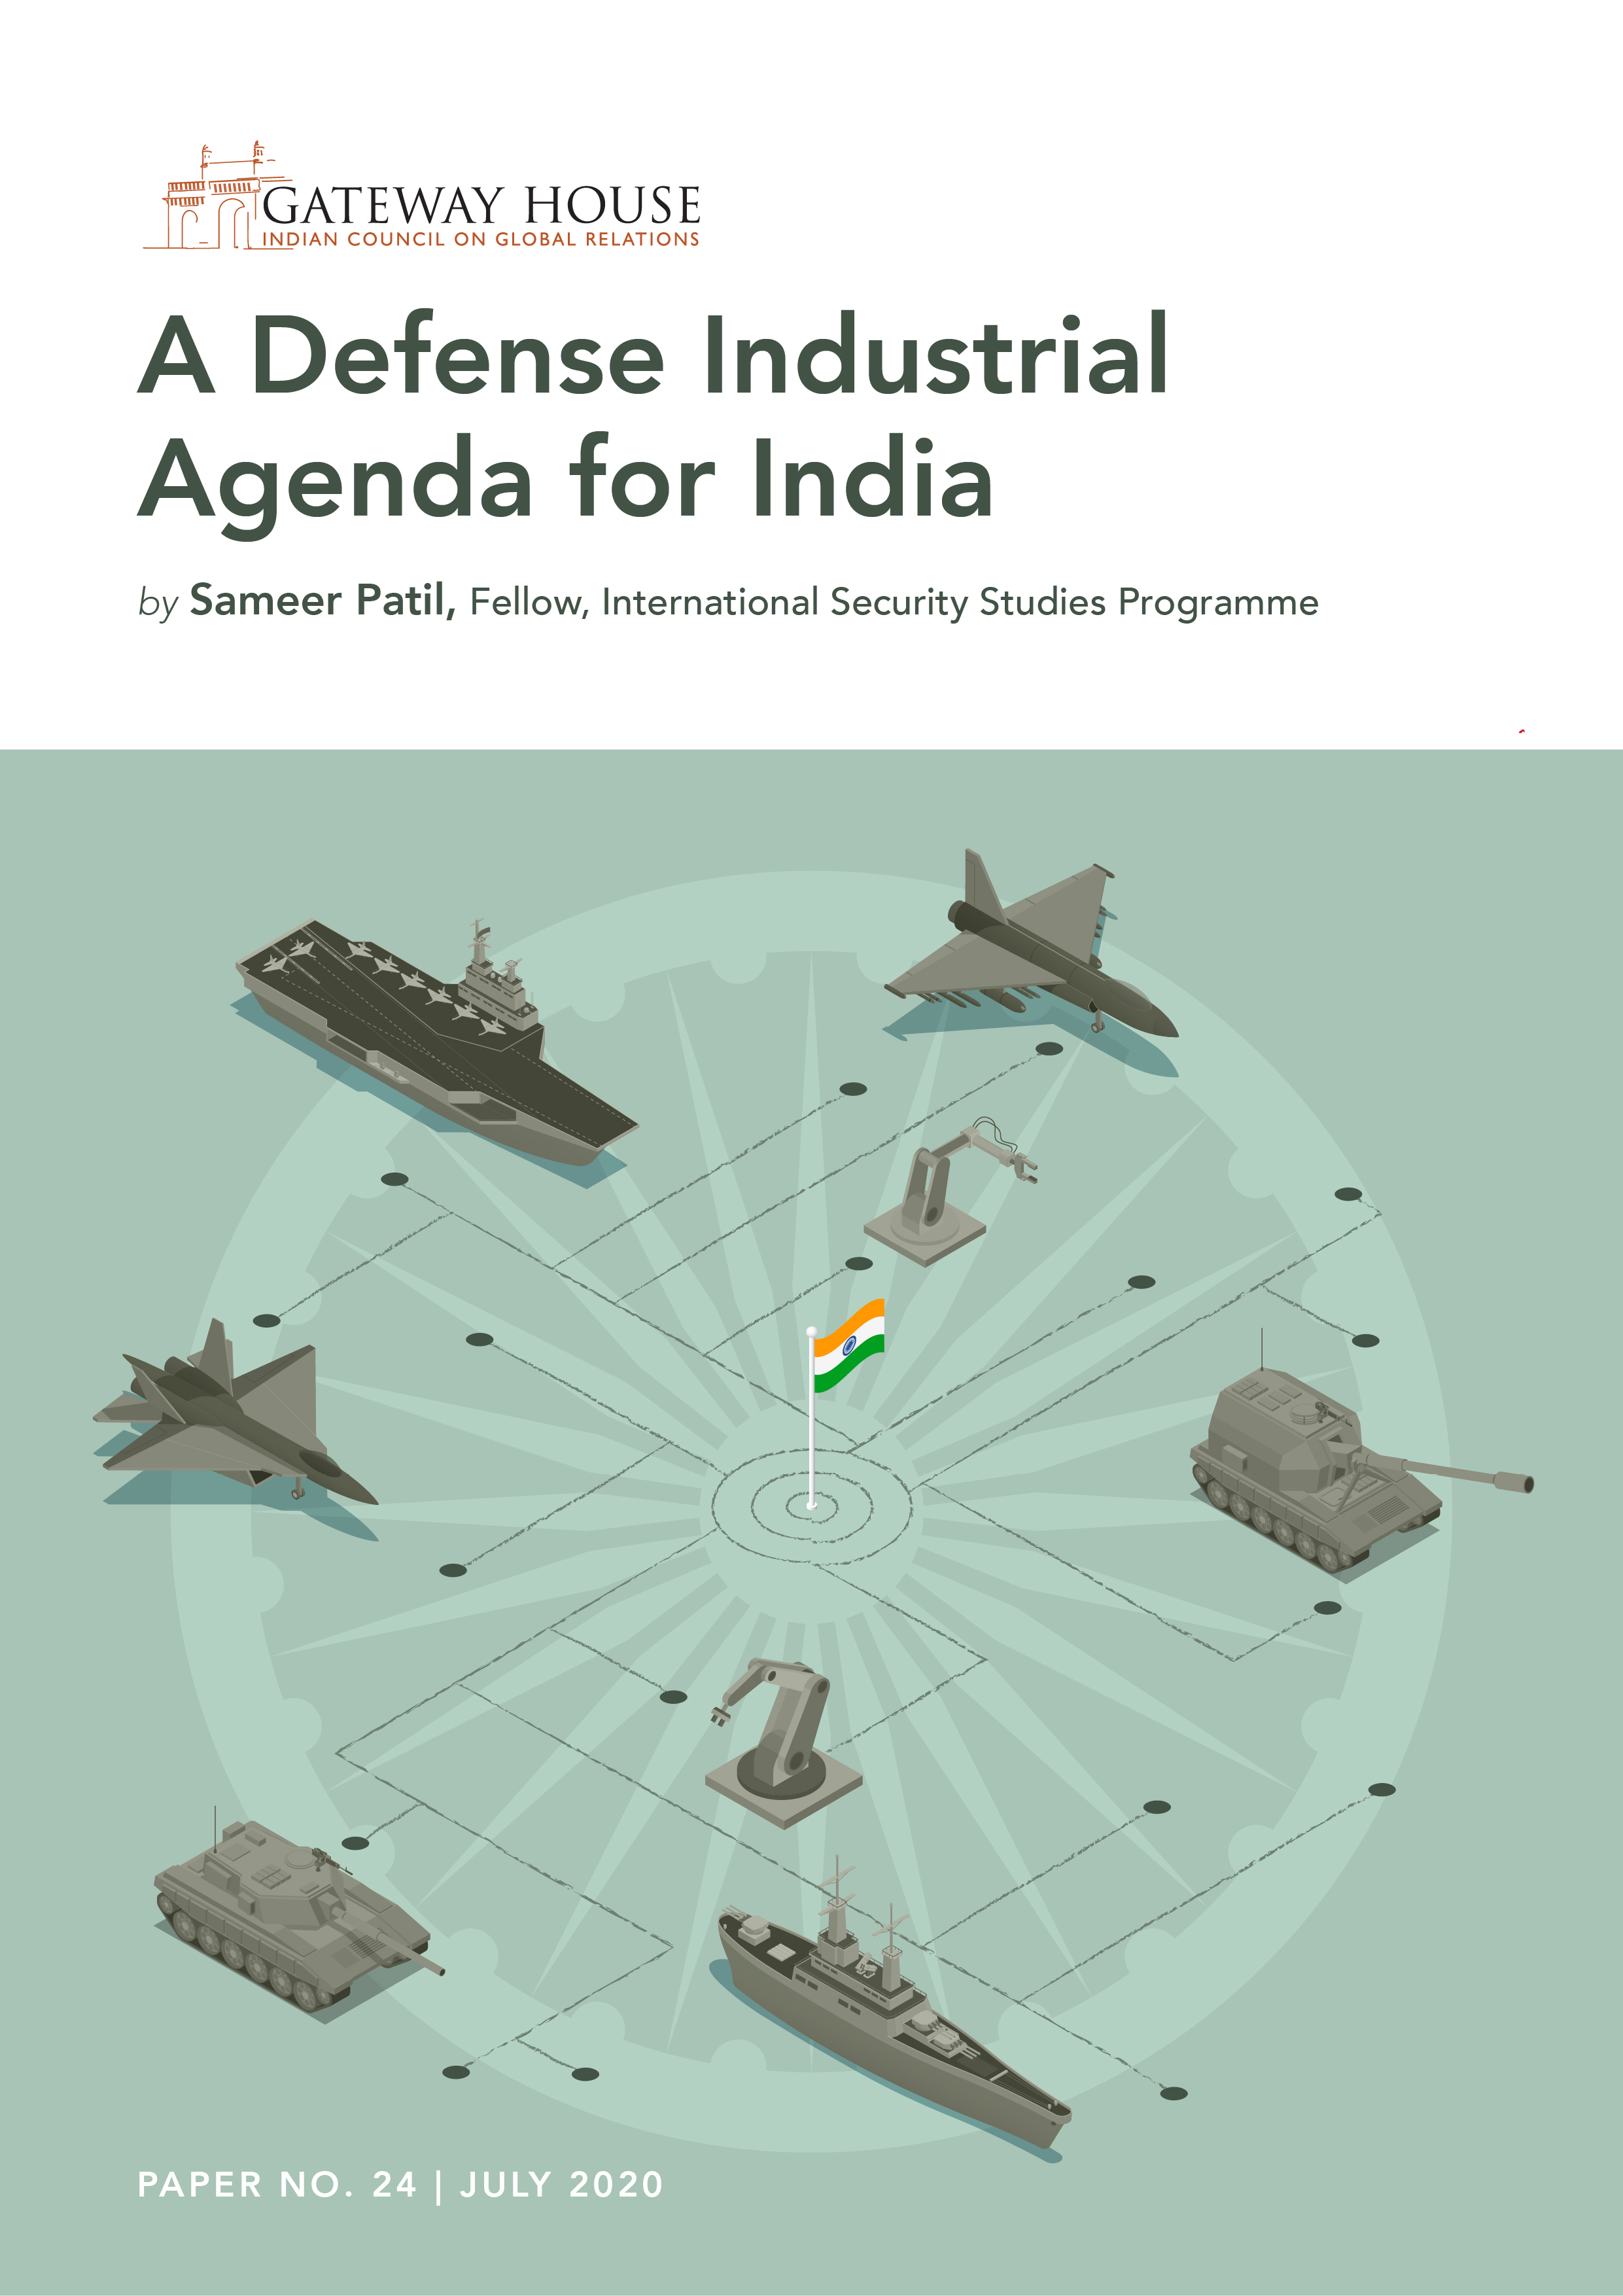 Defense Industrial Agenda_Sameer Patil_Final Cover